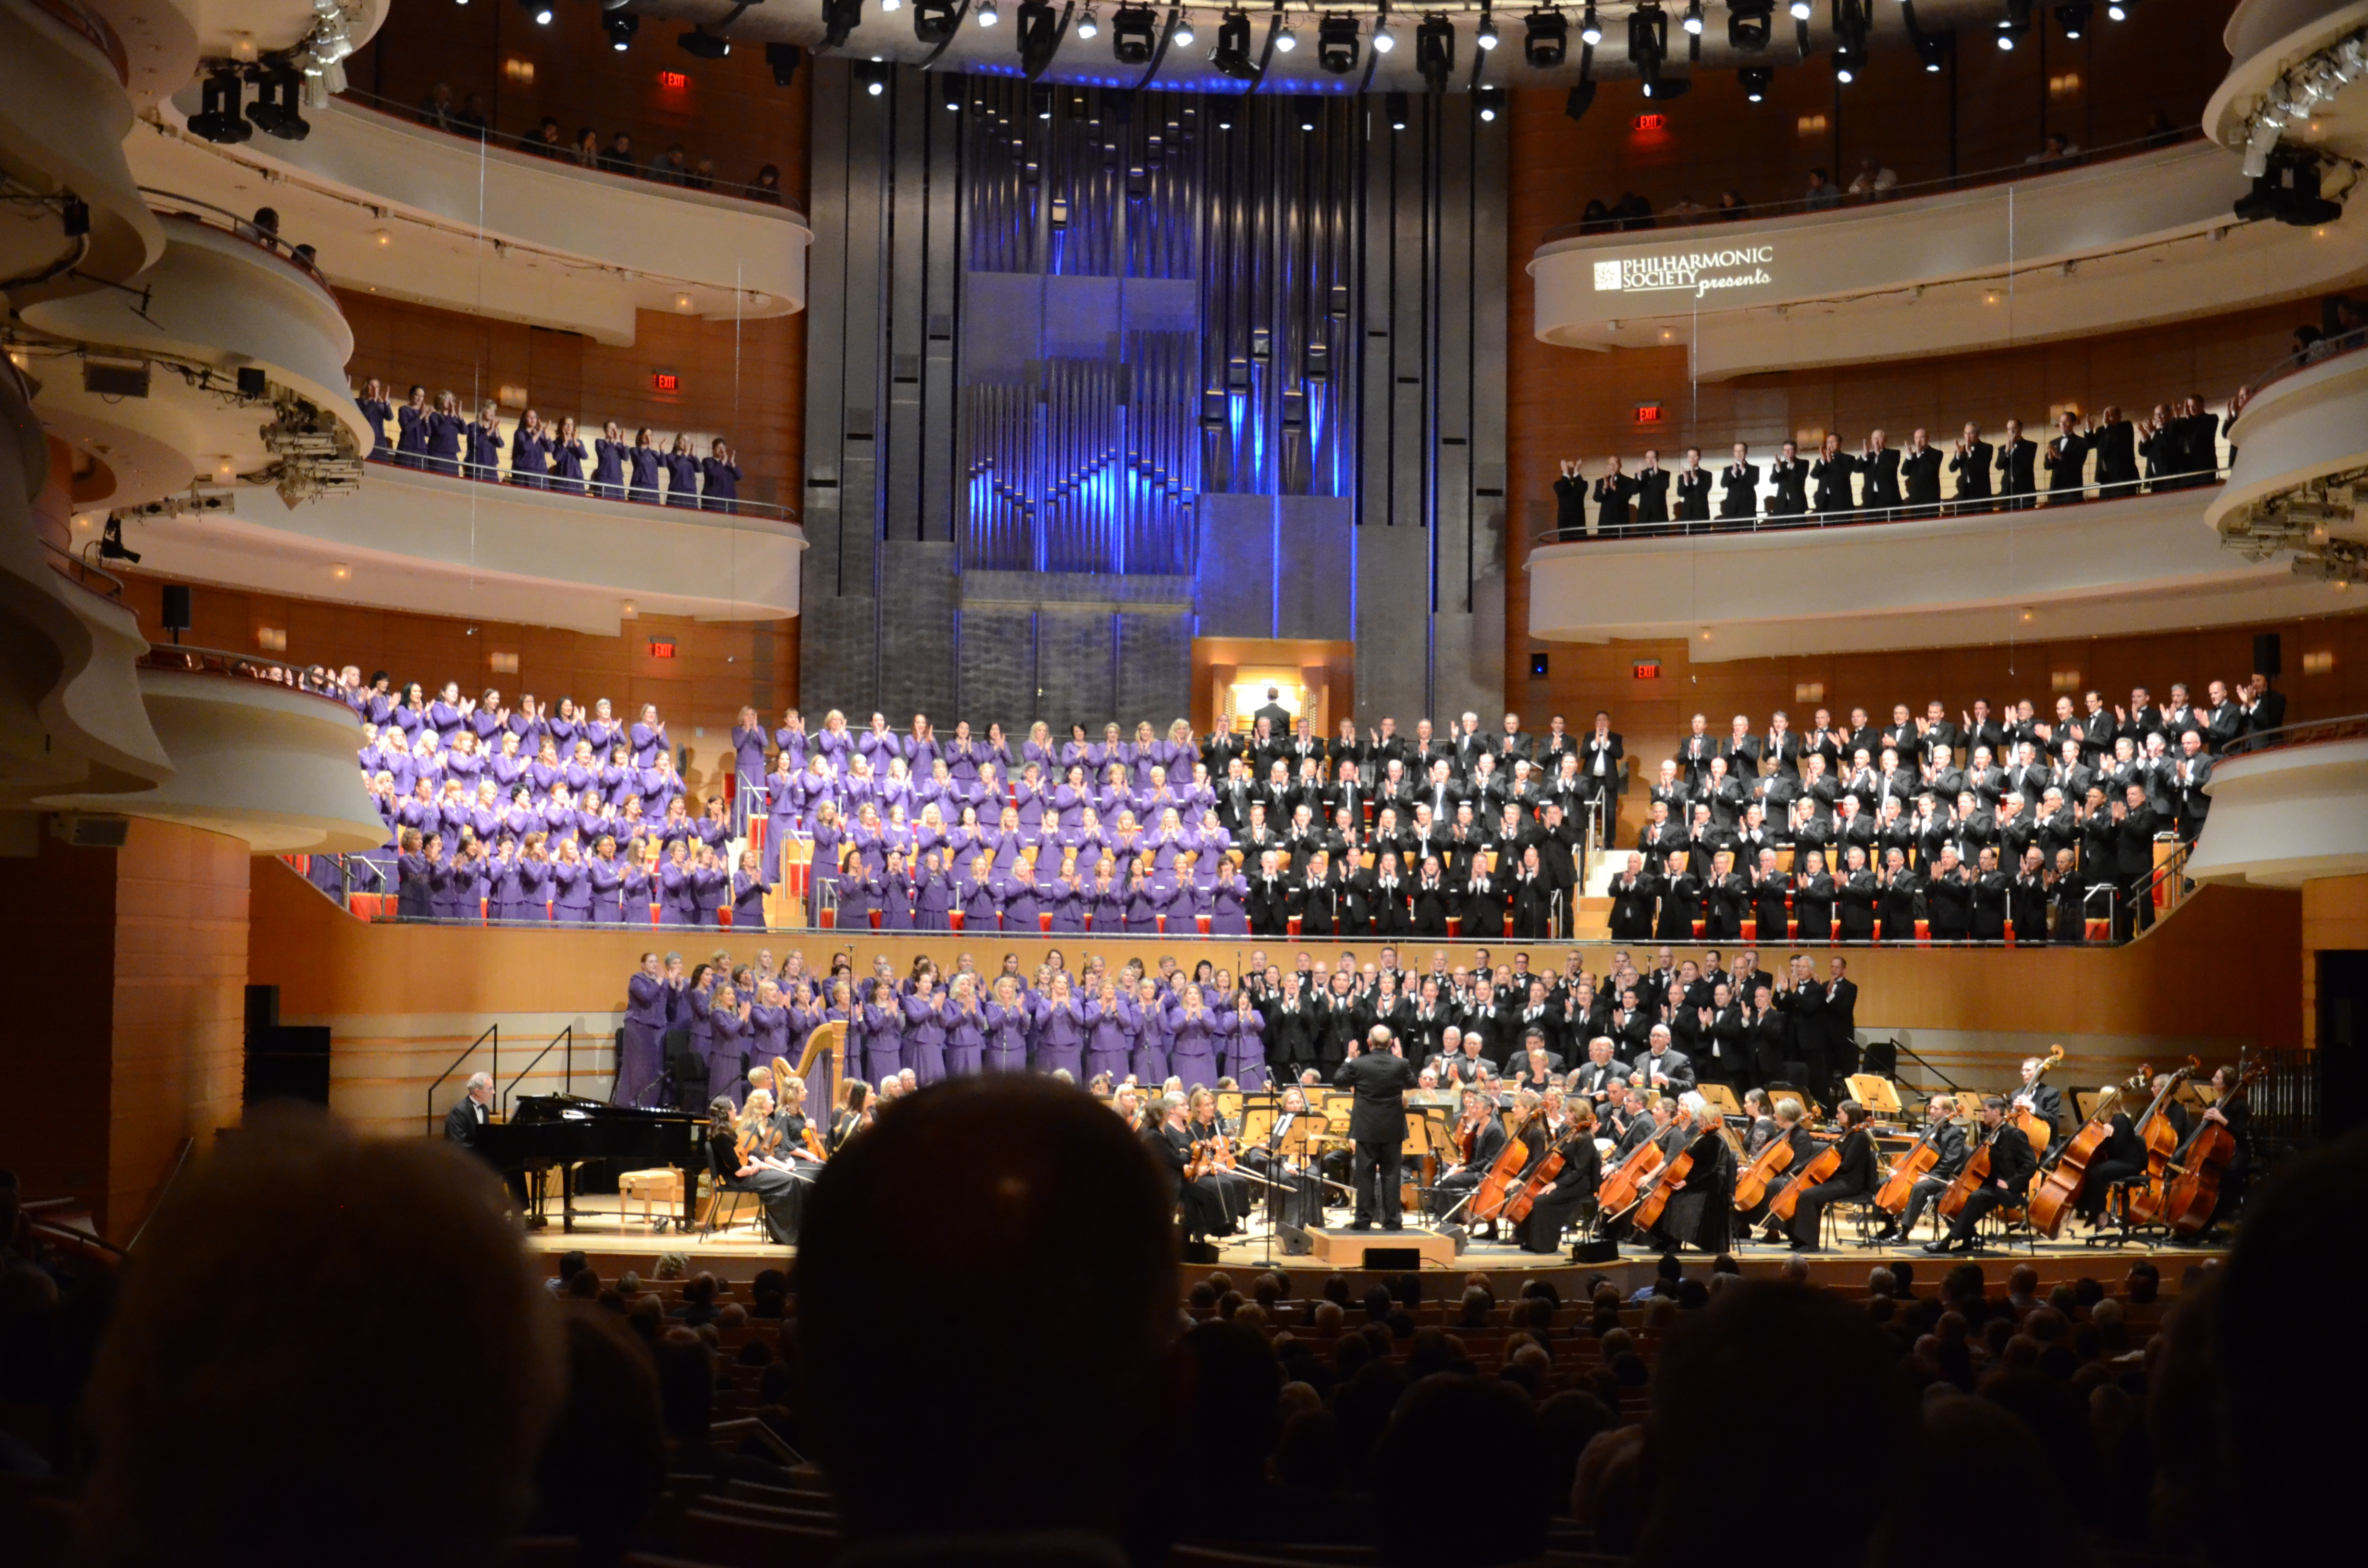 The Mormon Tabernacle Choir and Orchestra at Temple Square kicked off their 2018 tour on June 19, 2018, at the Renee and Henry Segerstrom Concert Hall in Costa Mesa, California.